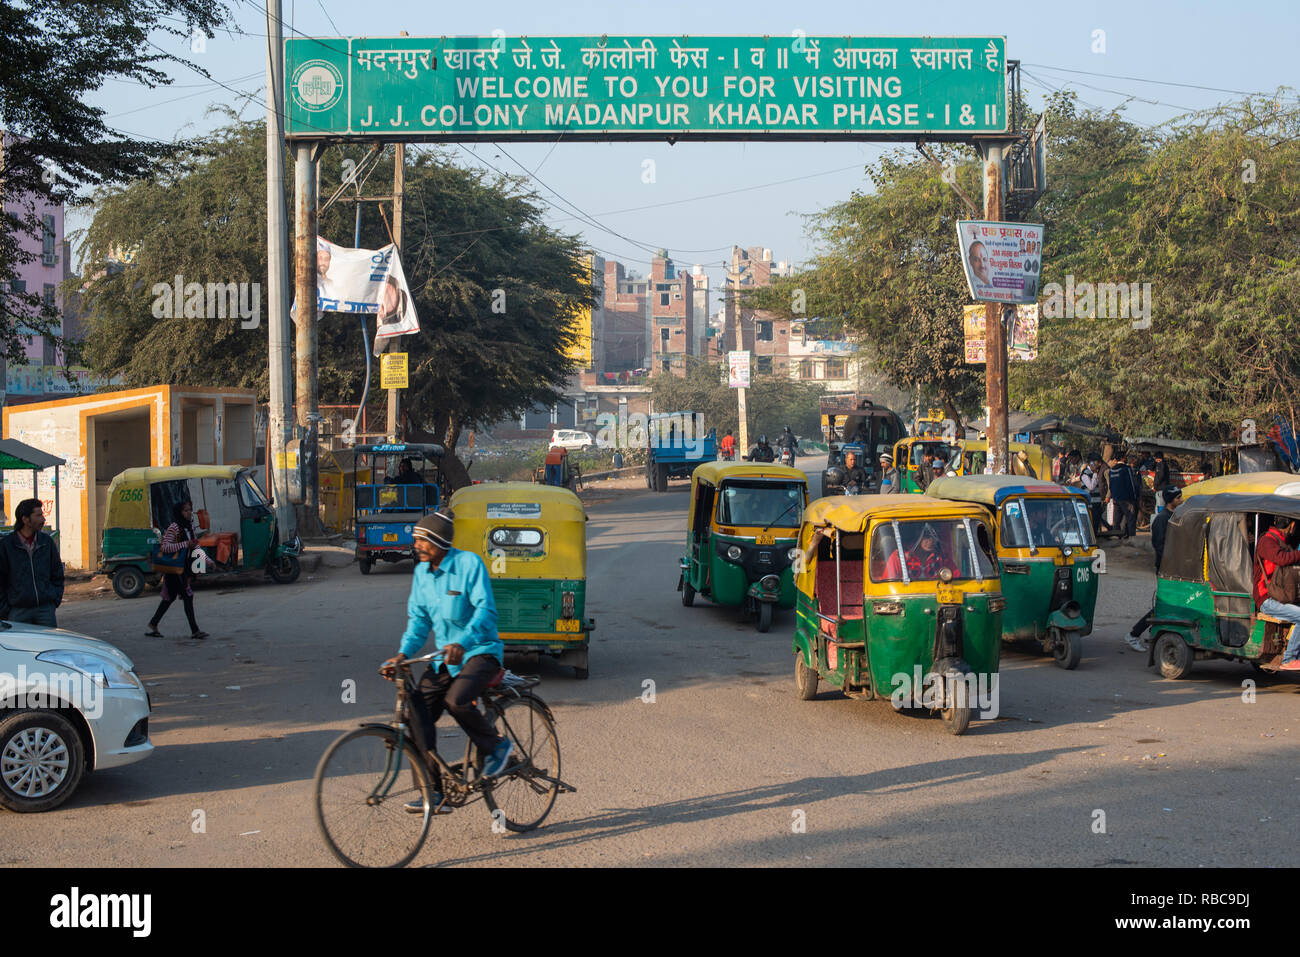 Welcome sign to JJ Colony Madanpur Khadar forms a gateway to the colony framing the entrance road busy with auto-rickshaws and other traffic. New Delhi. Stock Photo